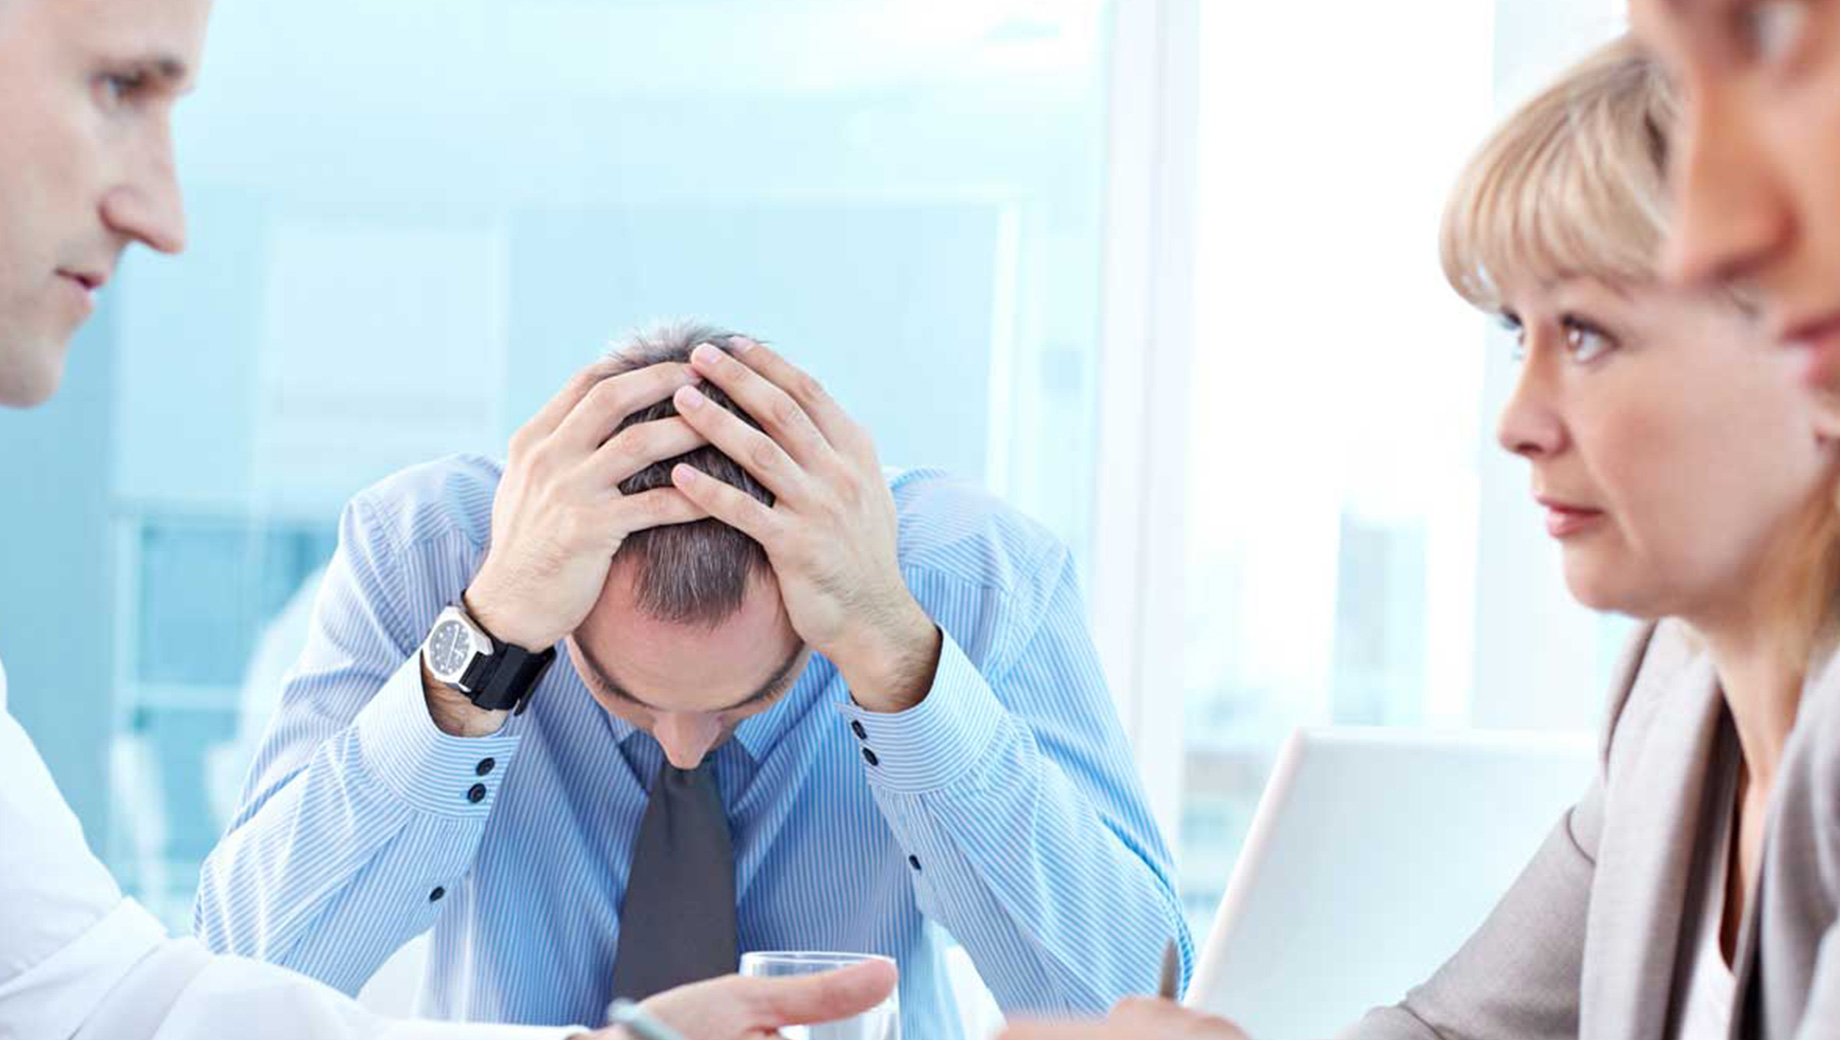 Employee Burnout, Part 2: What Managers Can Do